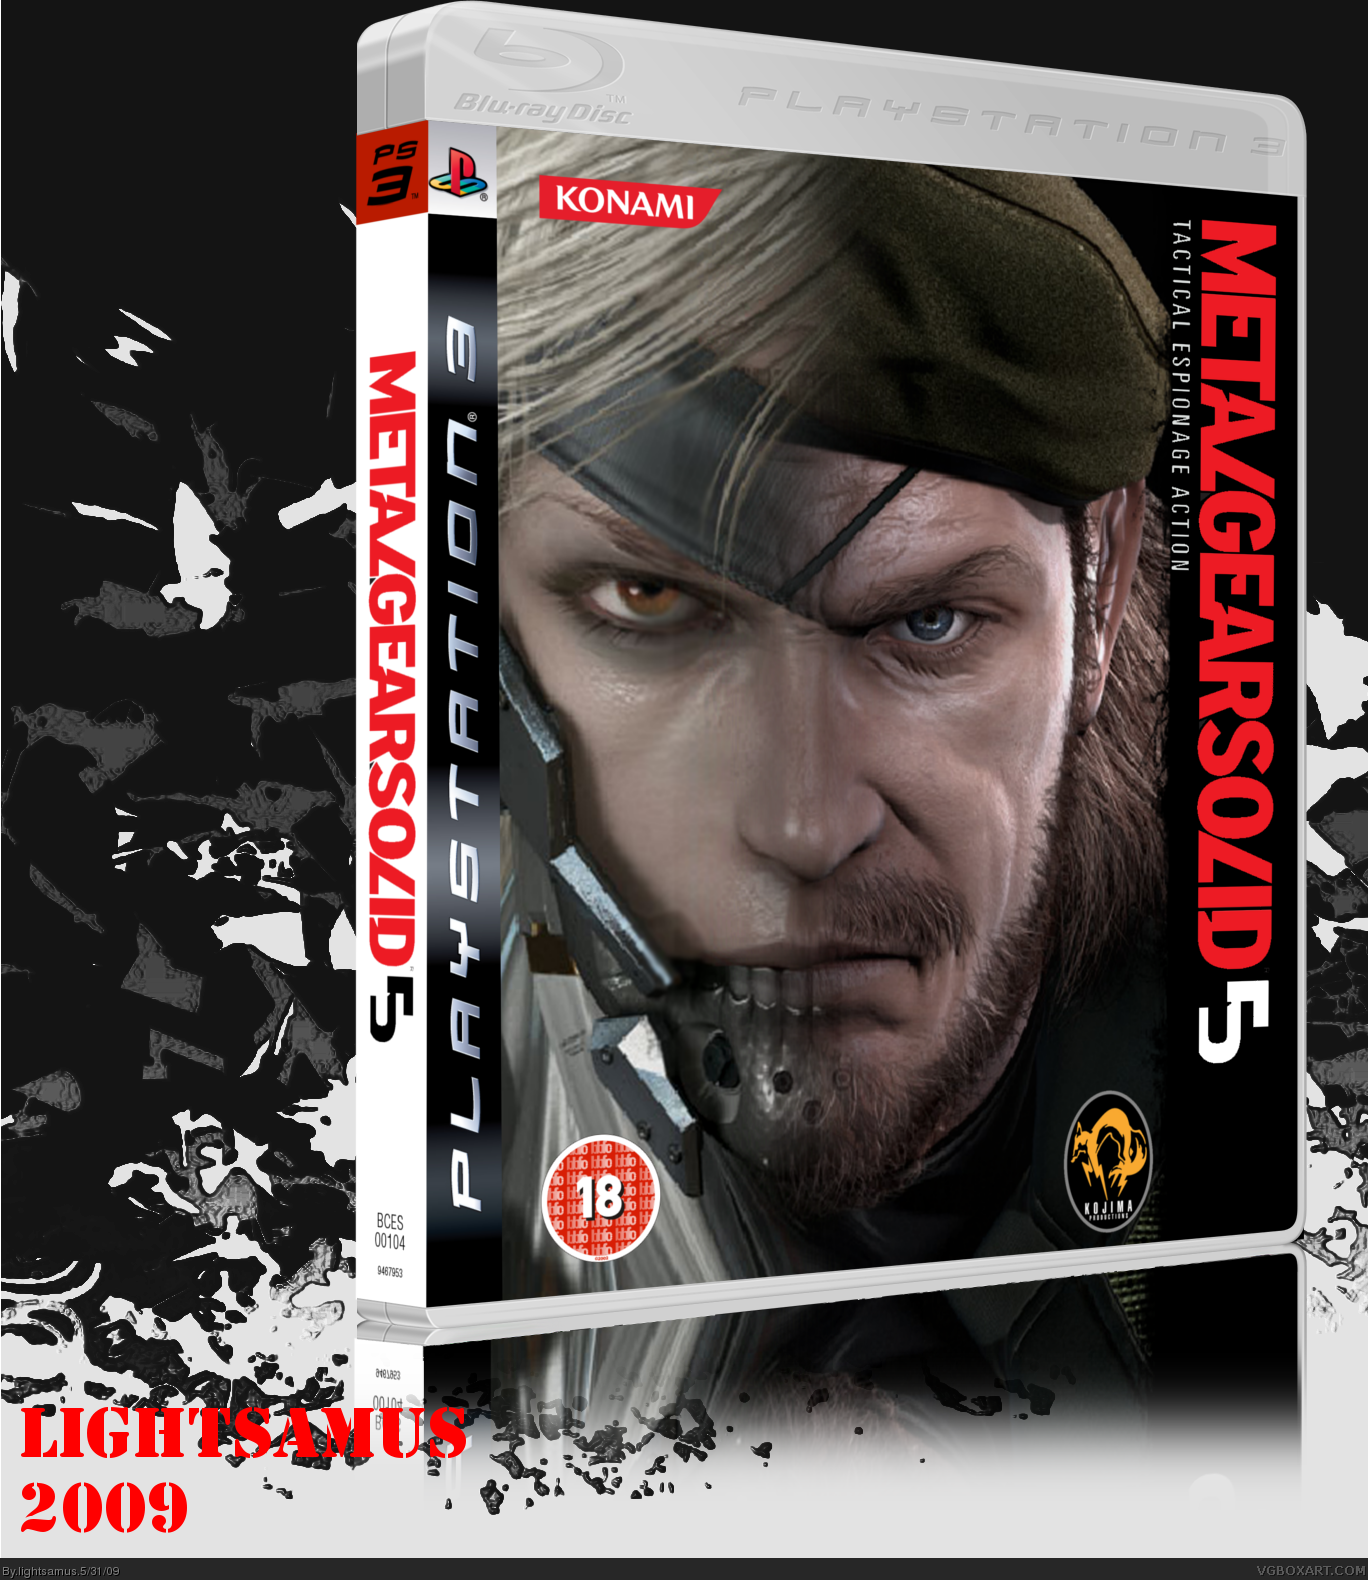 Metal Gear Solid 5 box cover